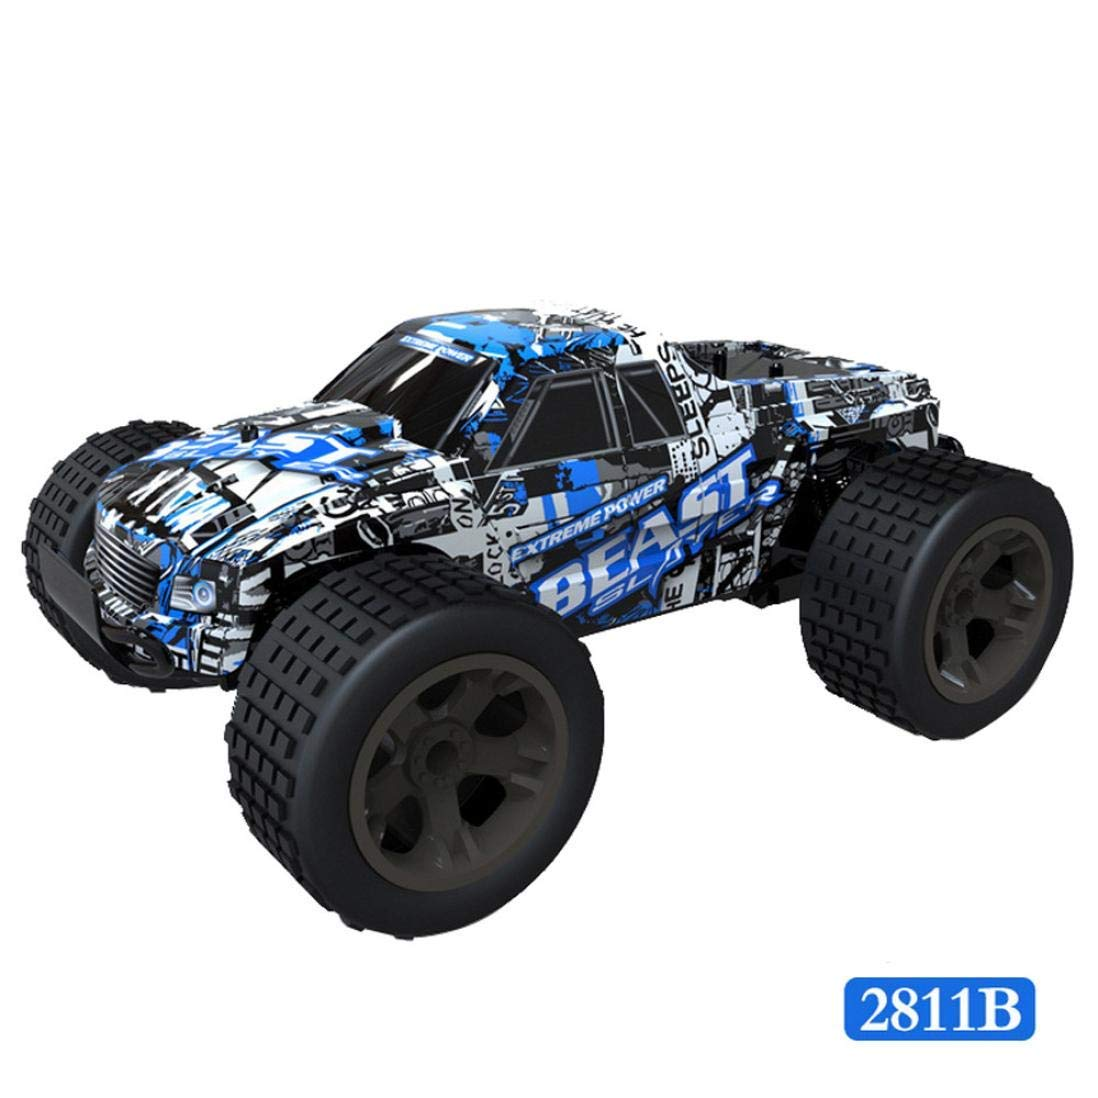 Yezijin Remote Control Car, 1:20 2WD High Speed RC Racing Car 4WD Remote Control Truck Off-Road Buggy Toys